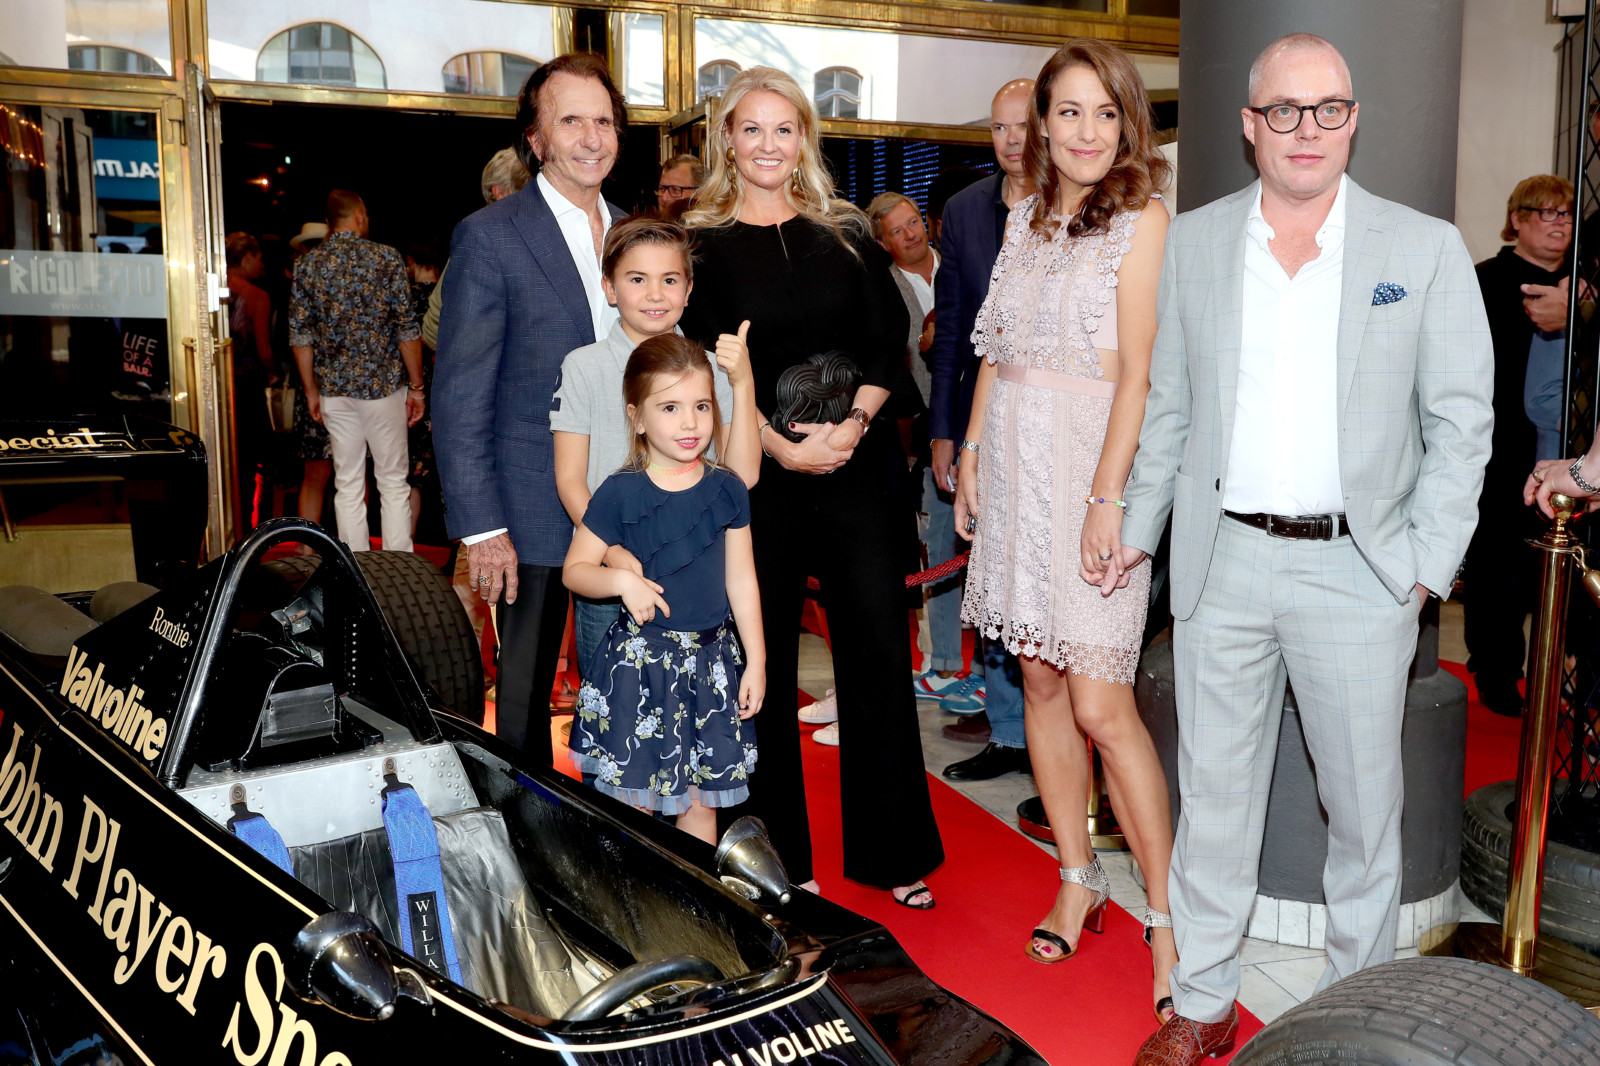 Emerson Fittipaldi Petre Event